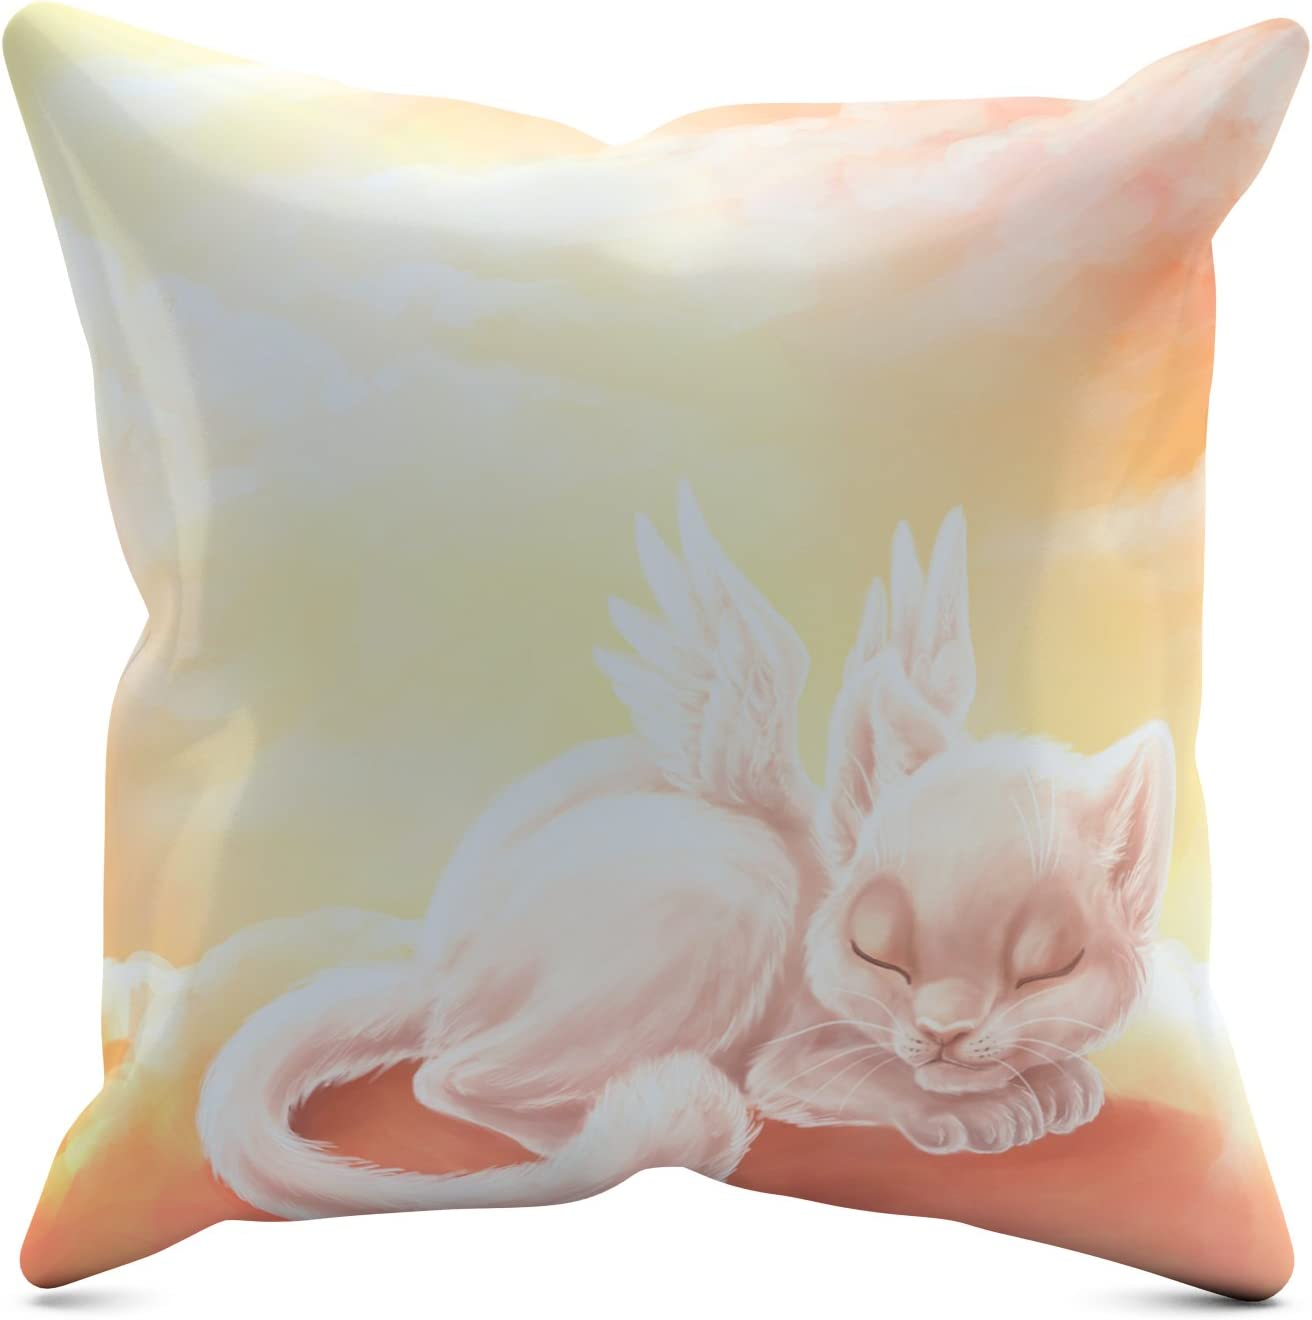 Picanova Angel Kitty 40 x 40 cm – Premium Decorative Cushion with Filling – Decoration for Baby and Children's Room with Choice of Motif – Children's Collection Design by Dolphy